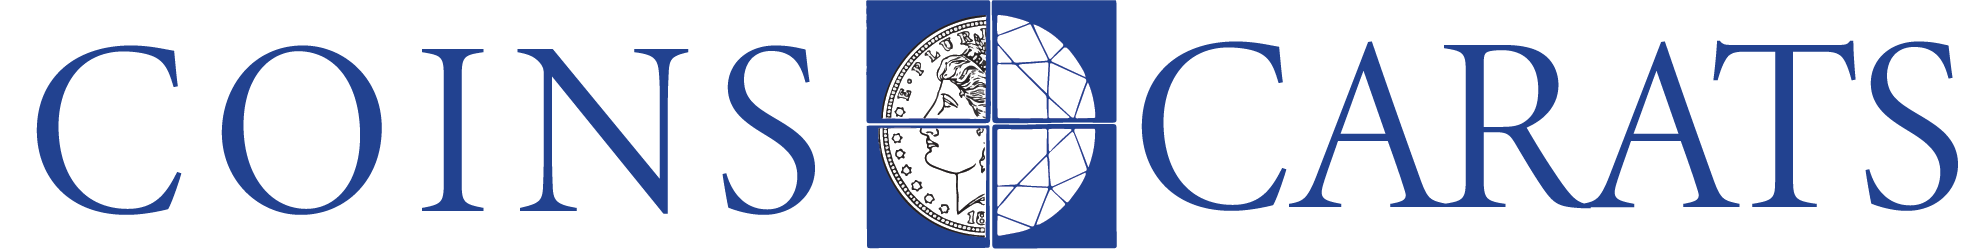 Coins and Carats Wide Logo